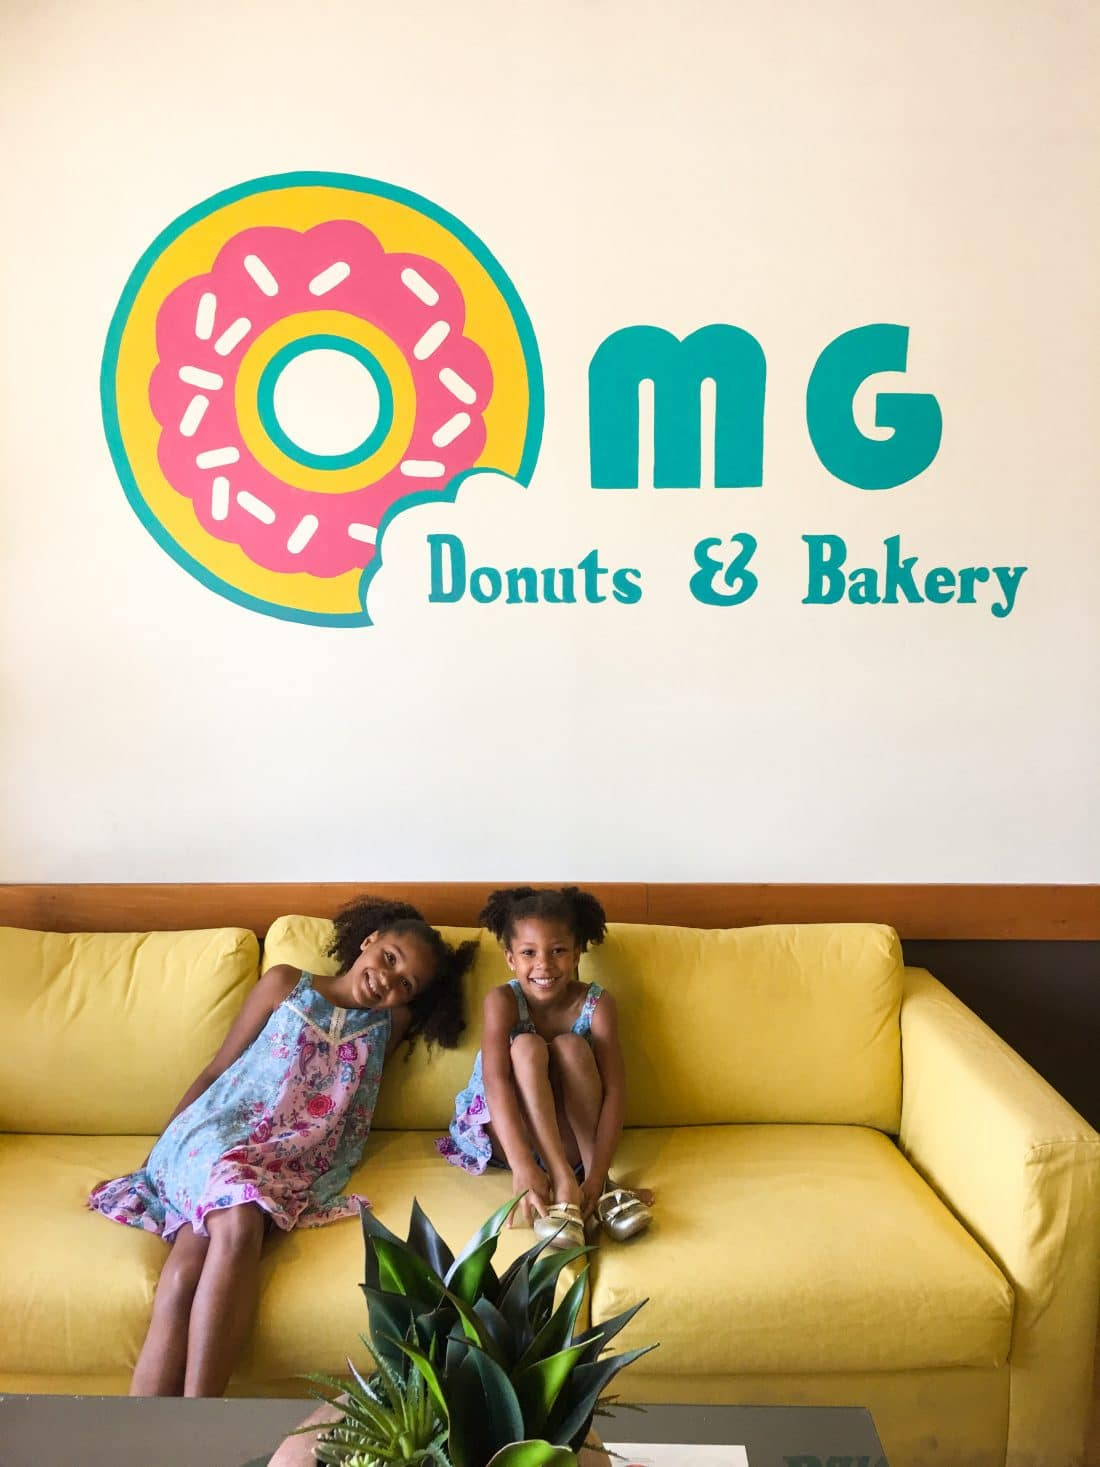 OMG Donuts and Bakery Wall Art Girls Smiling. OMG Donuts and Bakery Travel Review via - JaysSweetNSourLife.com